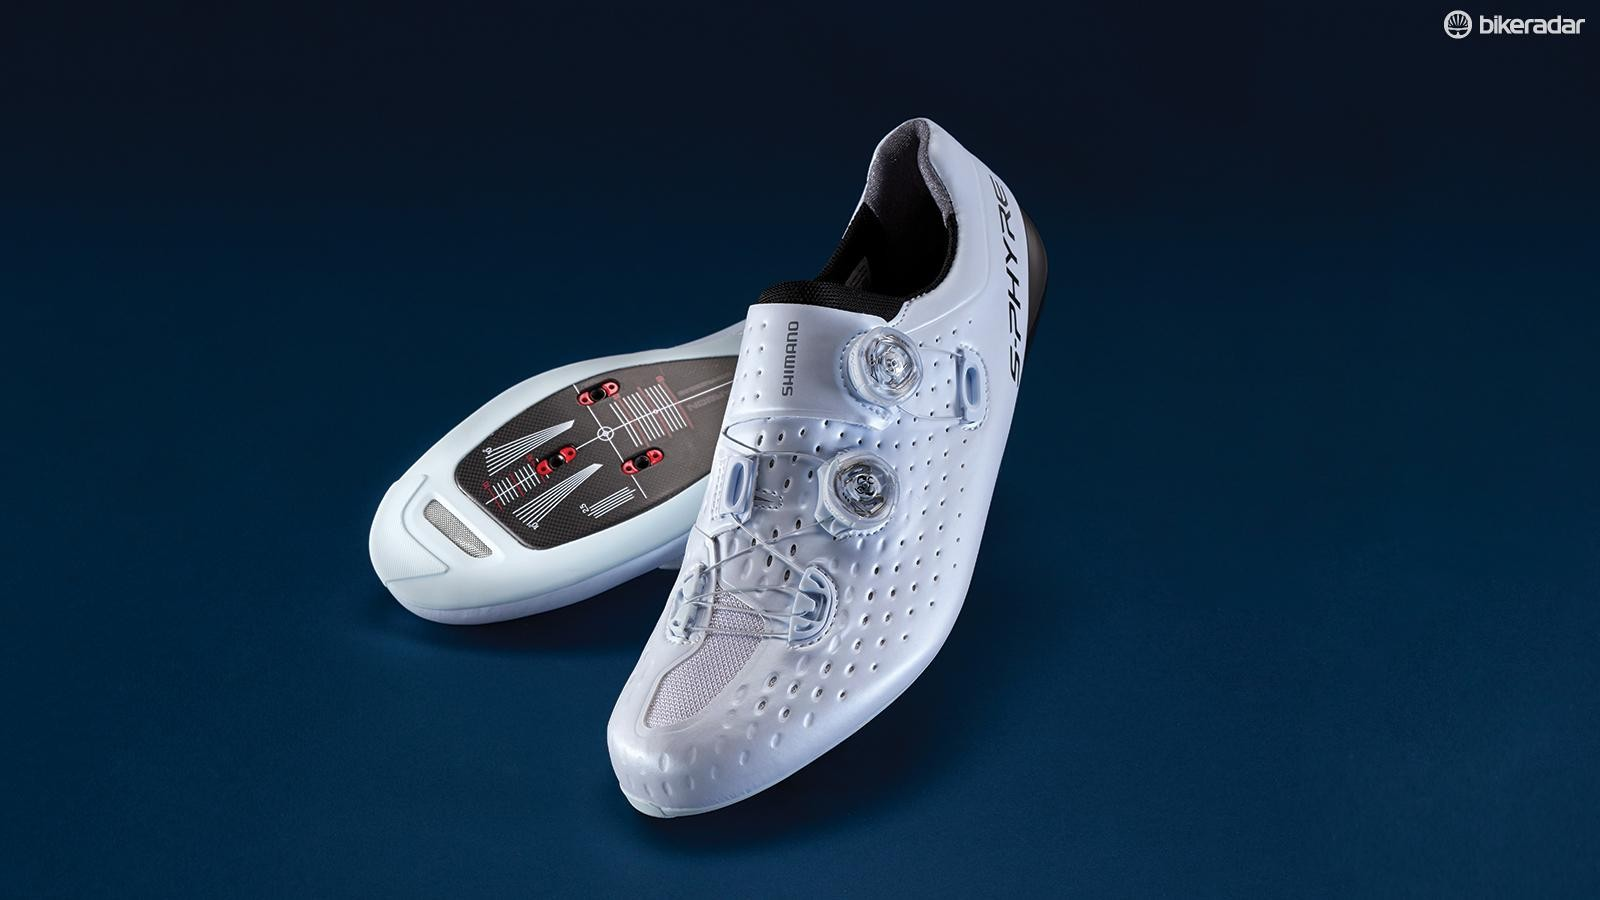 Shimano S-Phyre RC9 shoes are excellent, but they come at a price